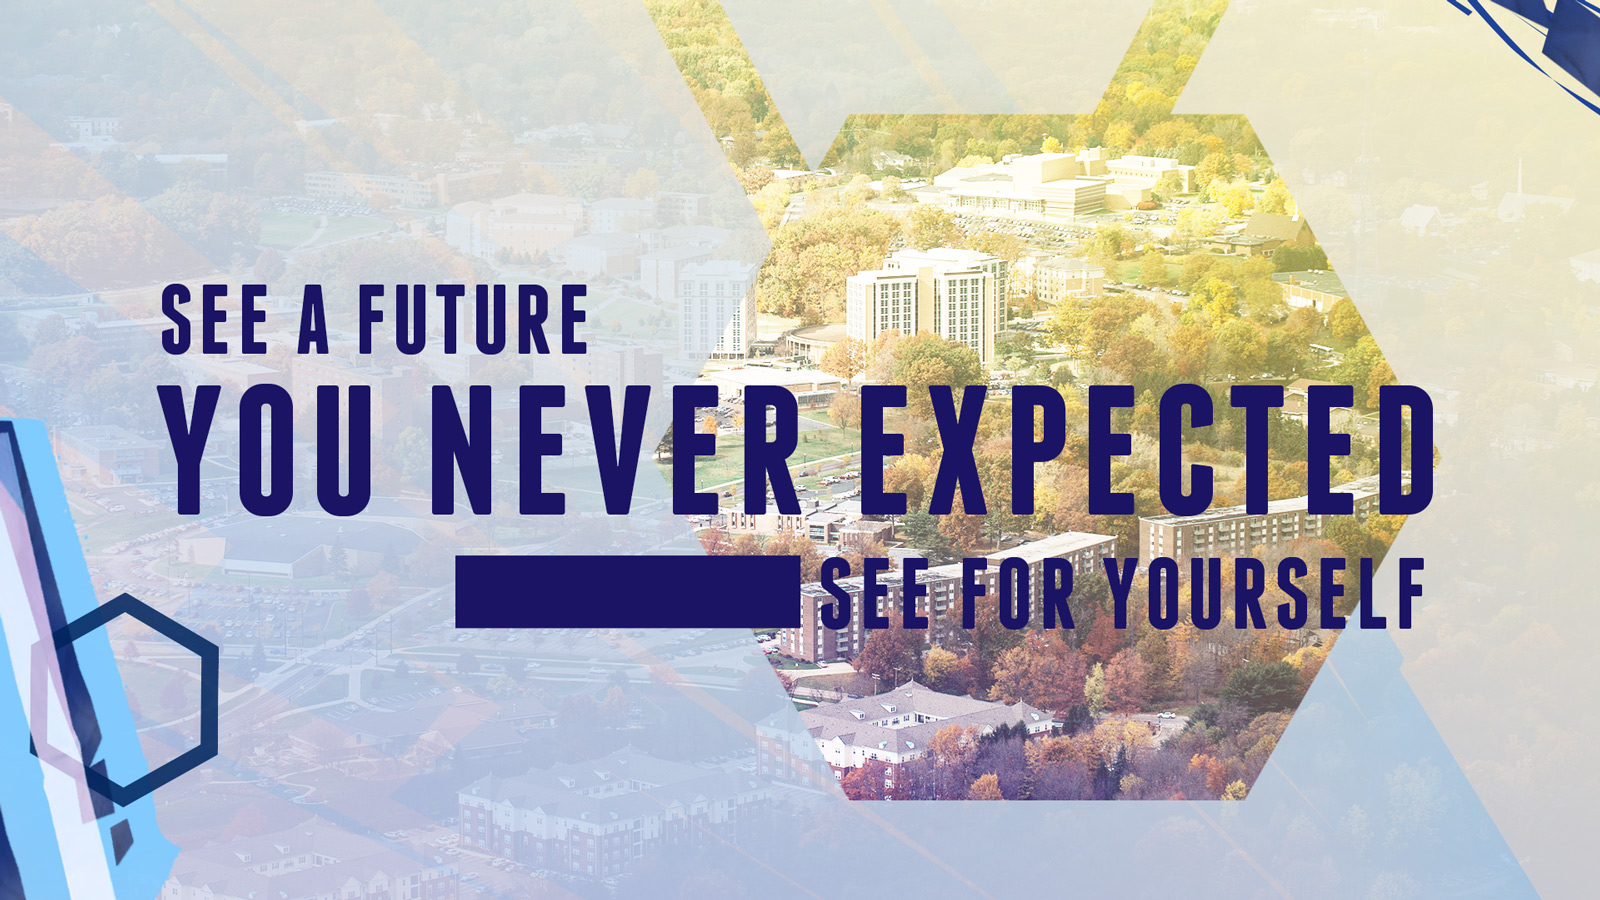 See a Future You Never Expected at Kent State, Register for a Daily Campus Tour